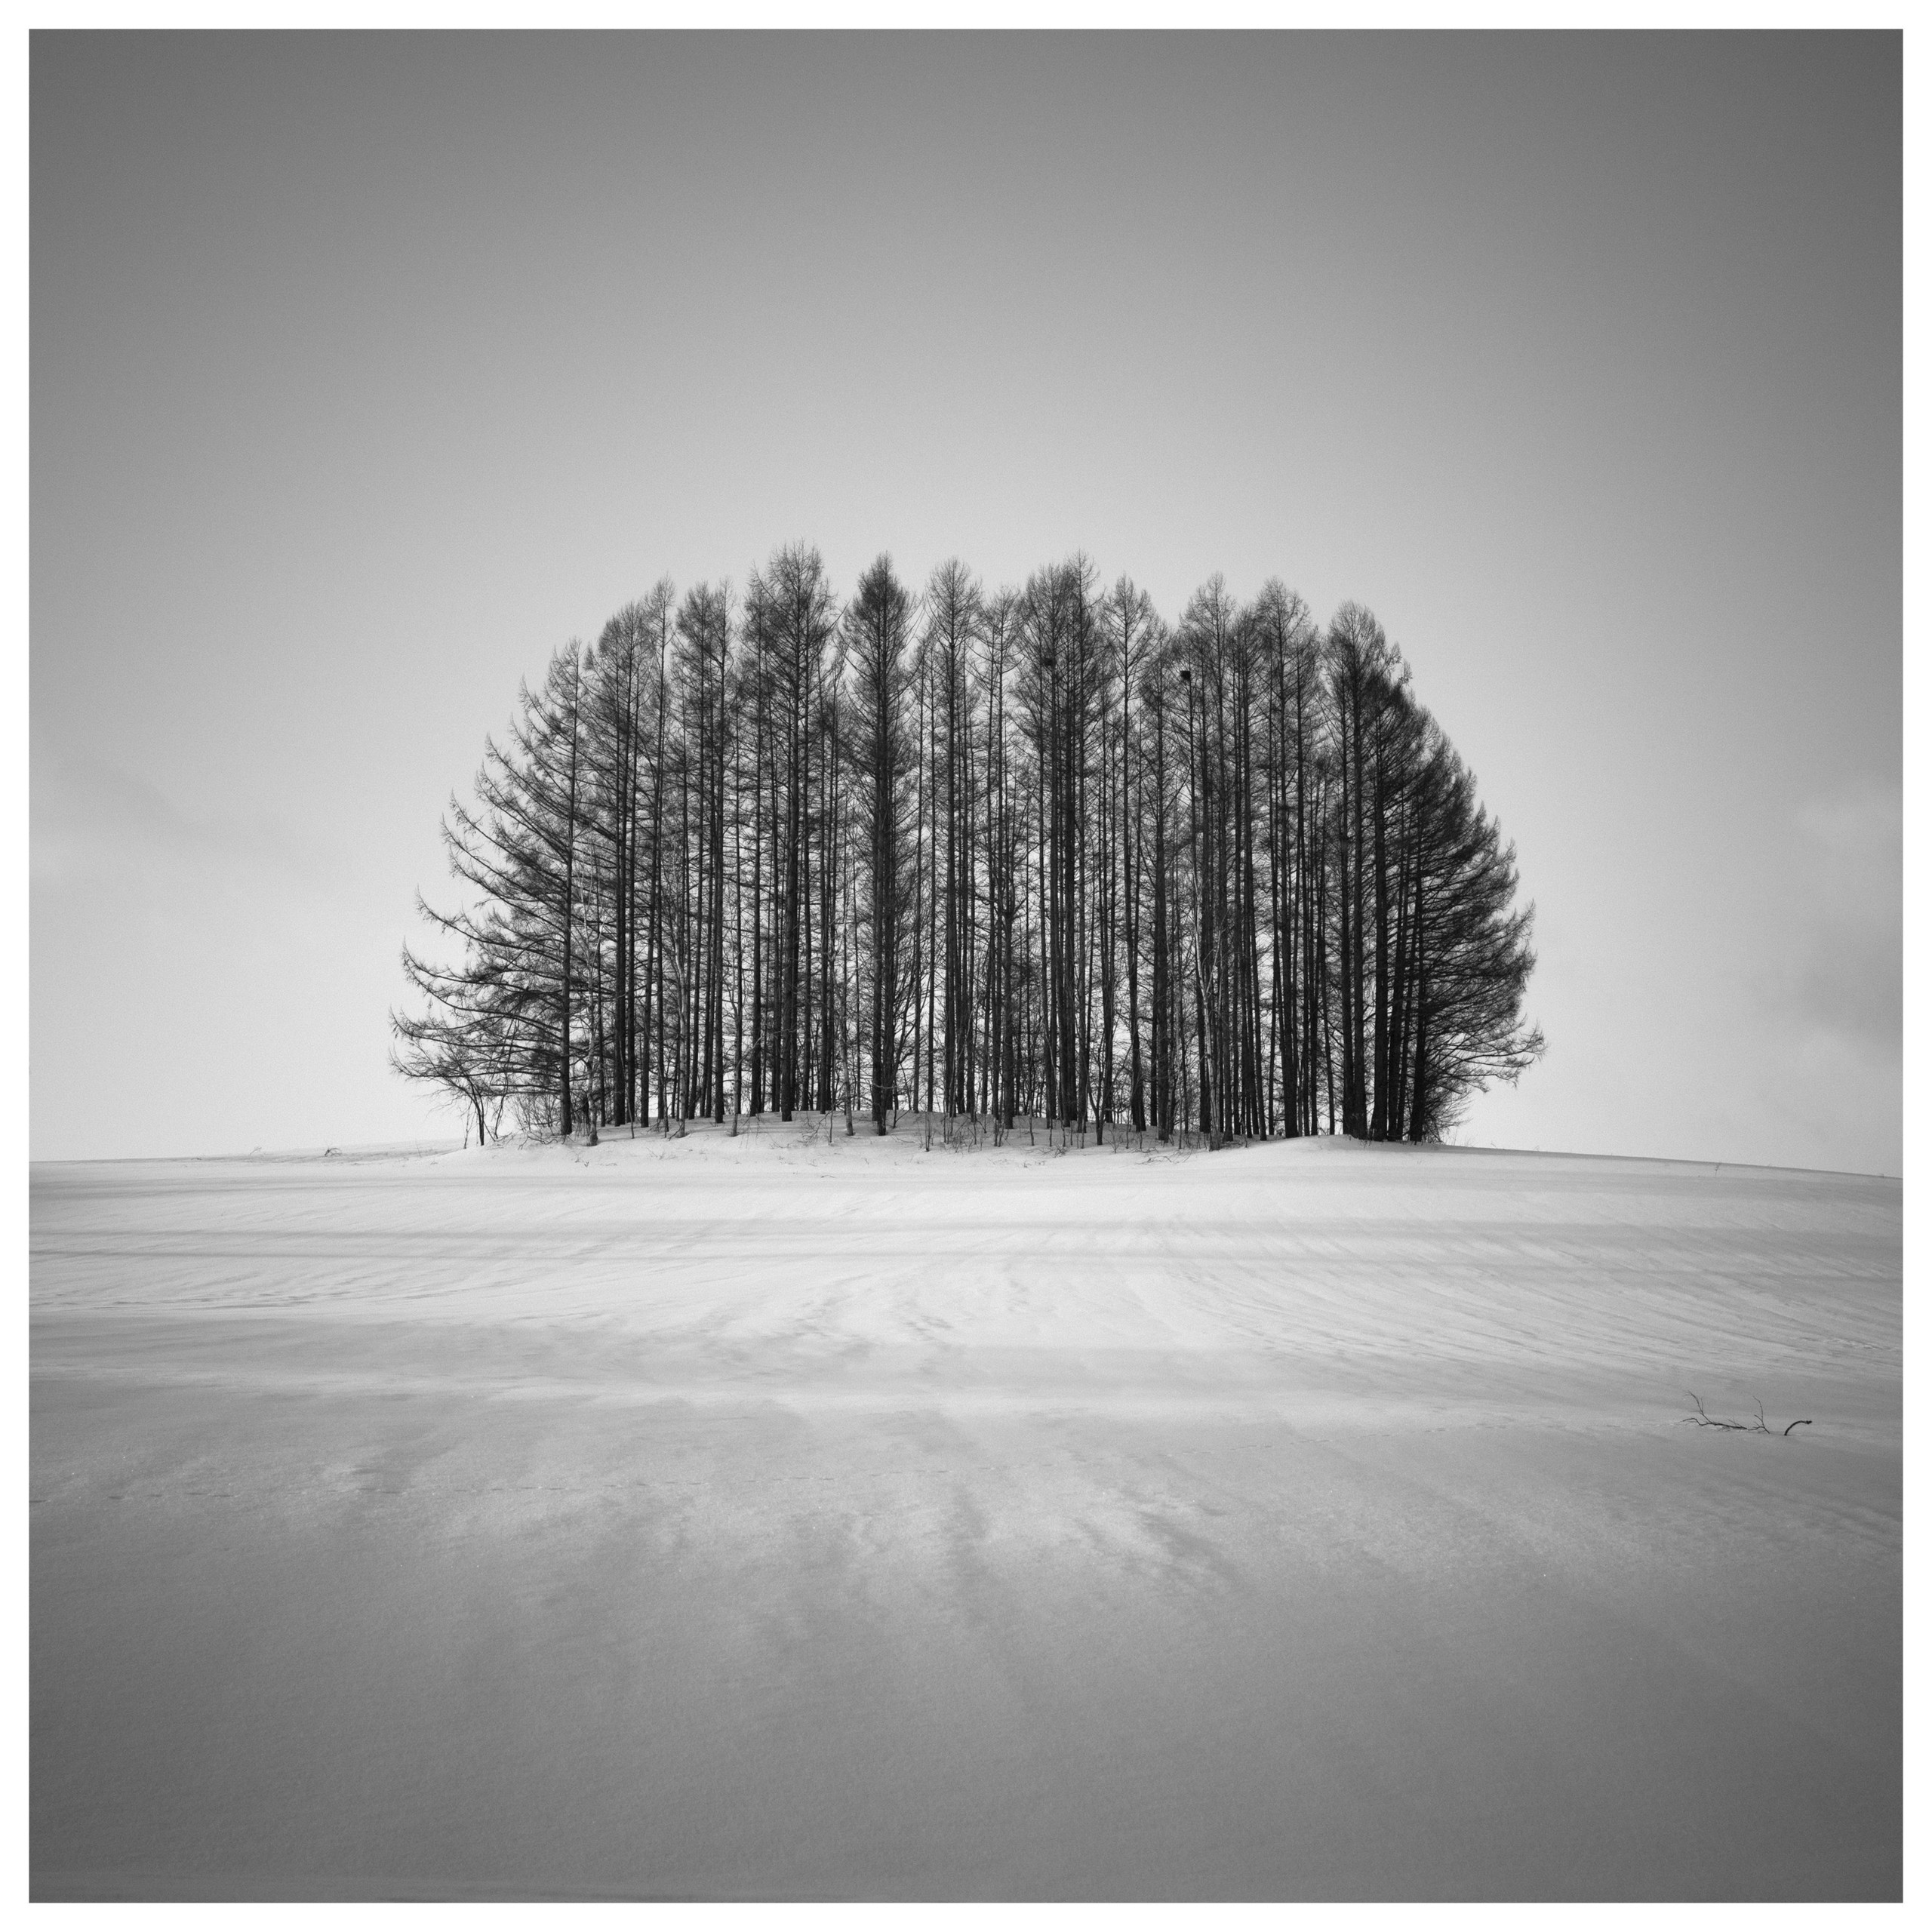 Hengki Koentjoro | Monochromatic Minimalism with the X1D